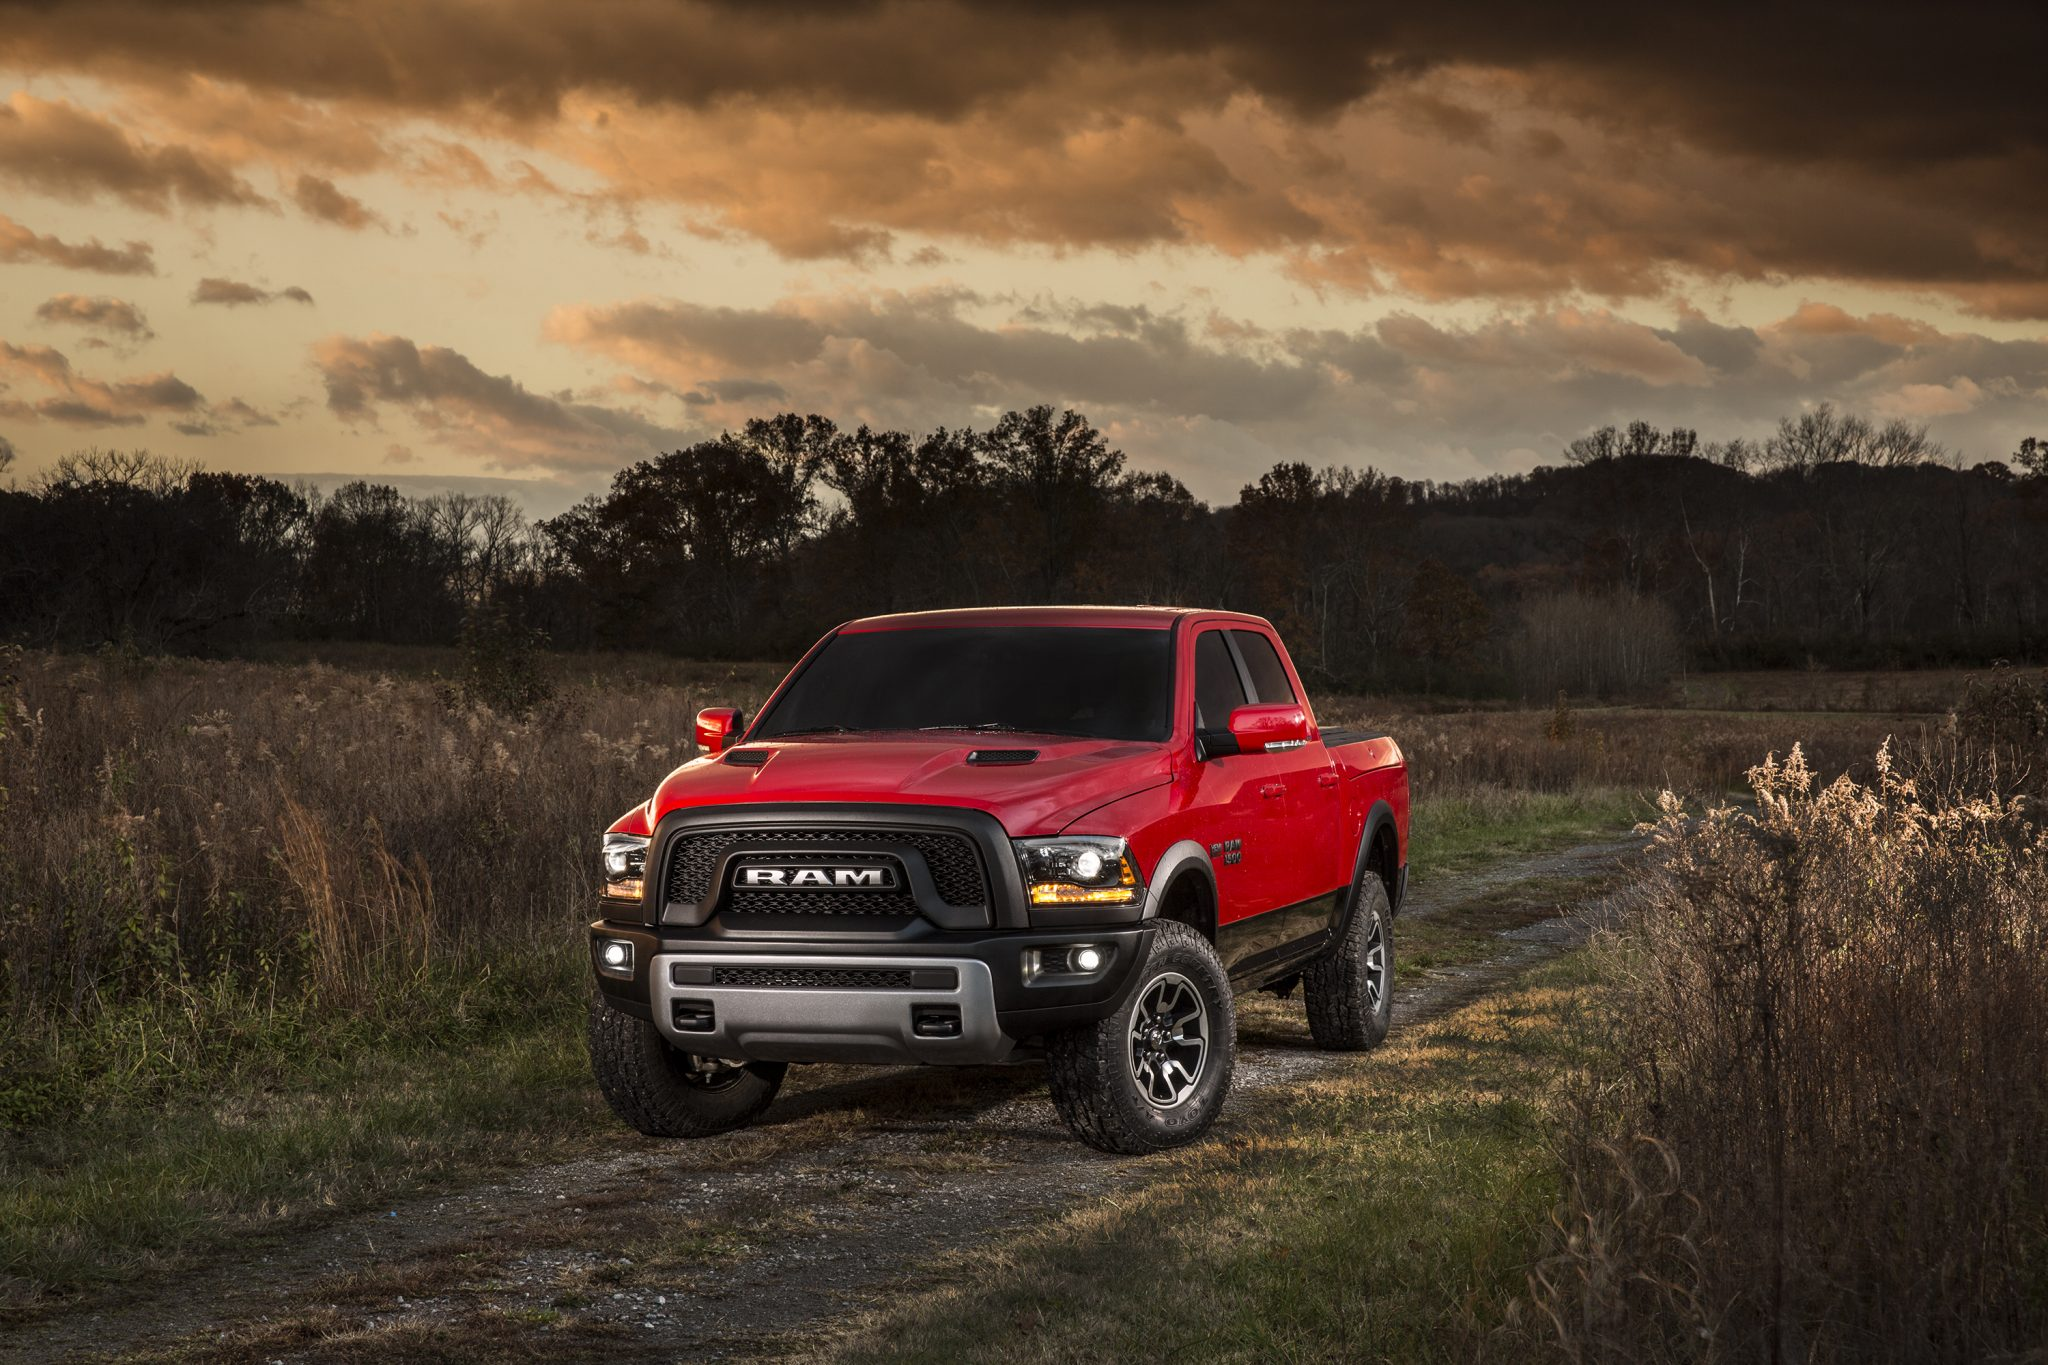 2015 Ram 1500 Rebel Is For Those Of Us With A Rebel